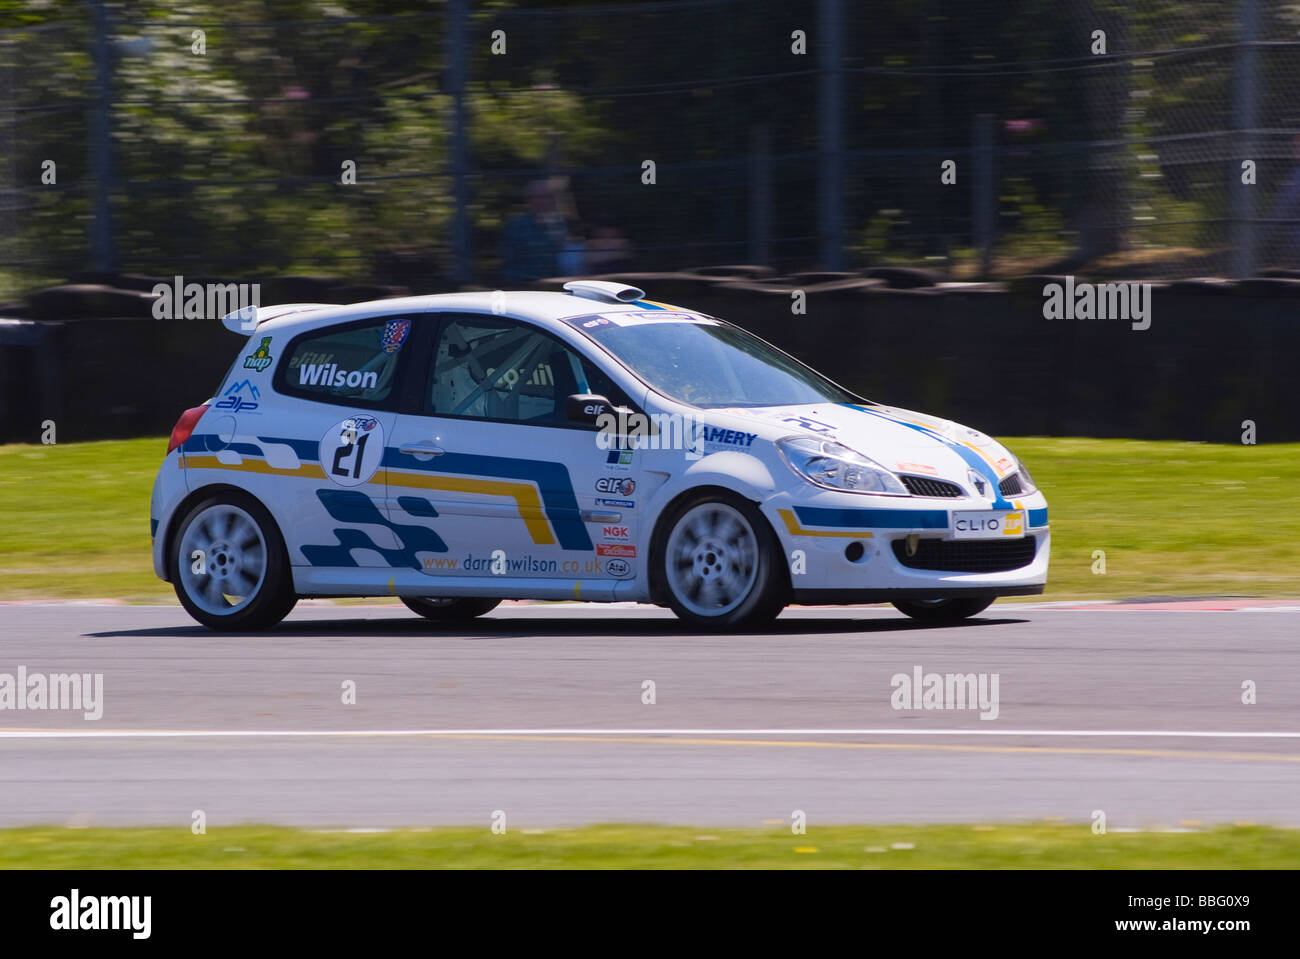 Renault Clio Race Car In Elf Renault Clio Cup At Oulton